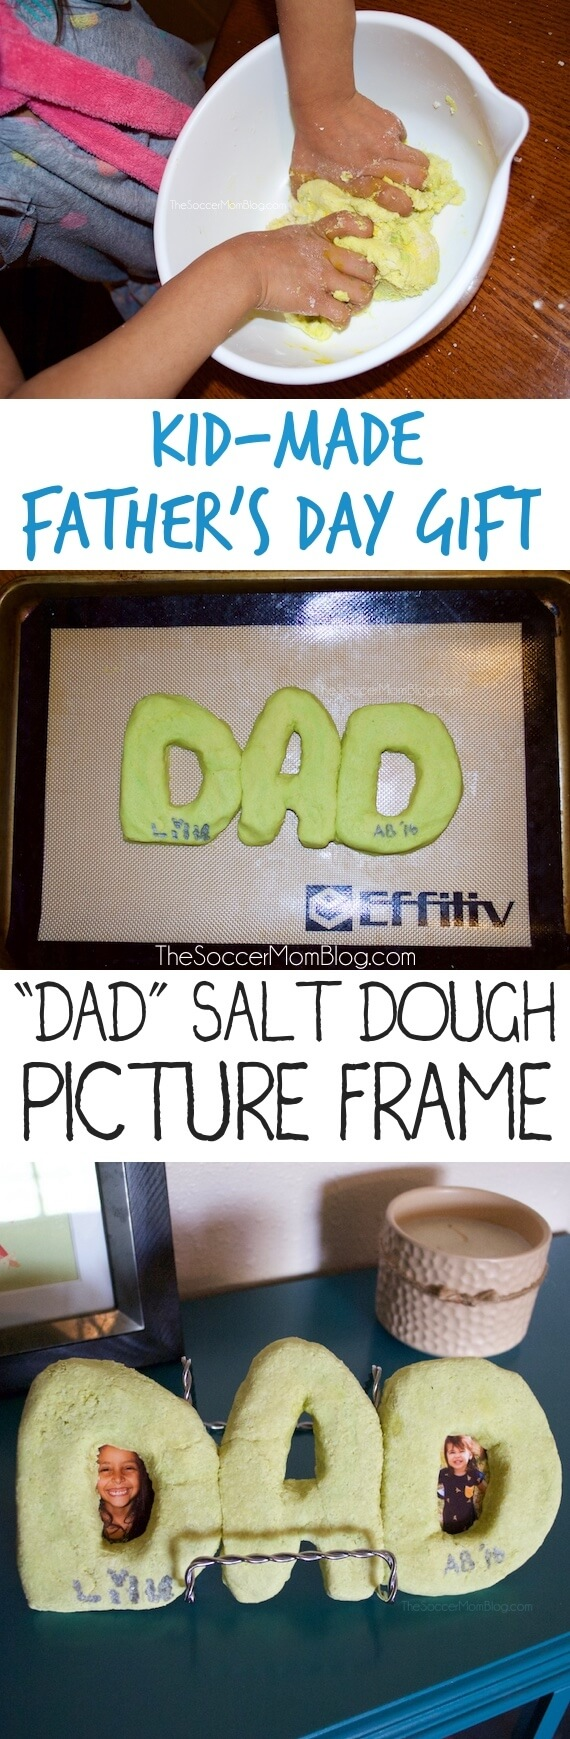 An adorable kid-made gift idea perfect for Father's Day! This handmade salt dough picture frame is an easy craft and lots of fun!